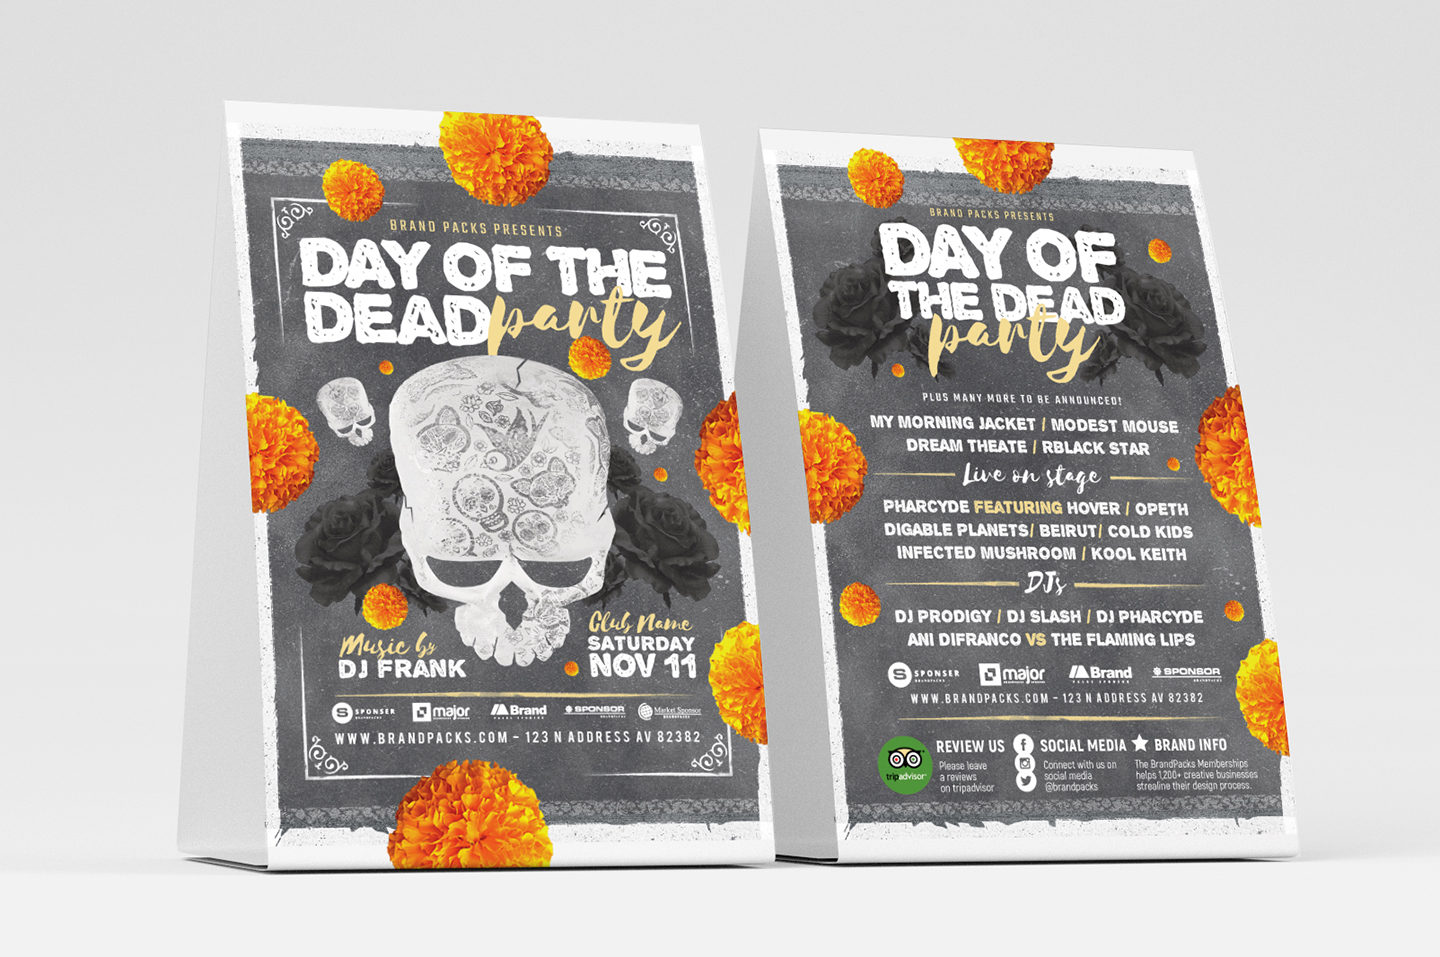 Day of The Dead Party Flyer Template example image 2